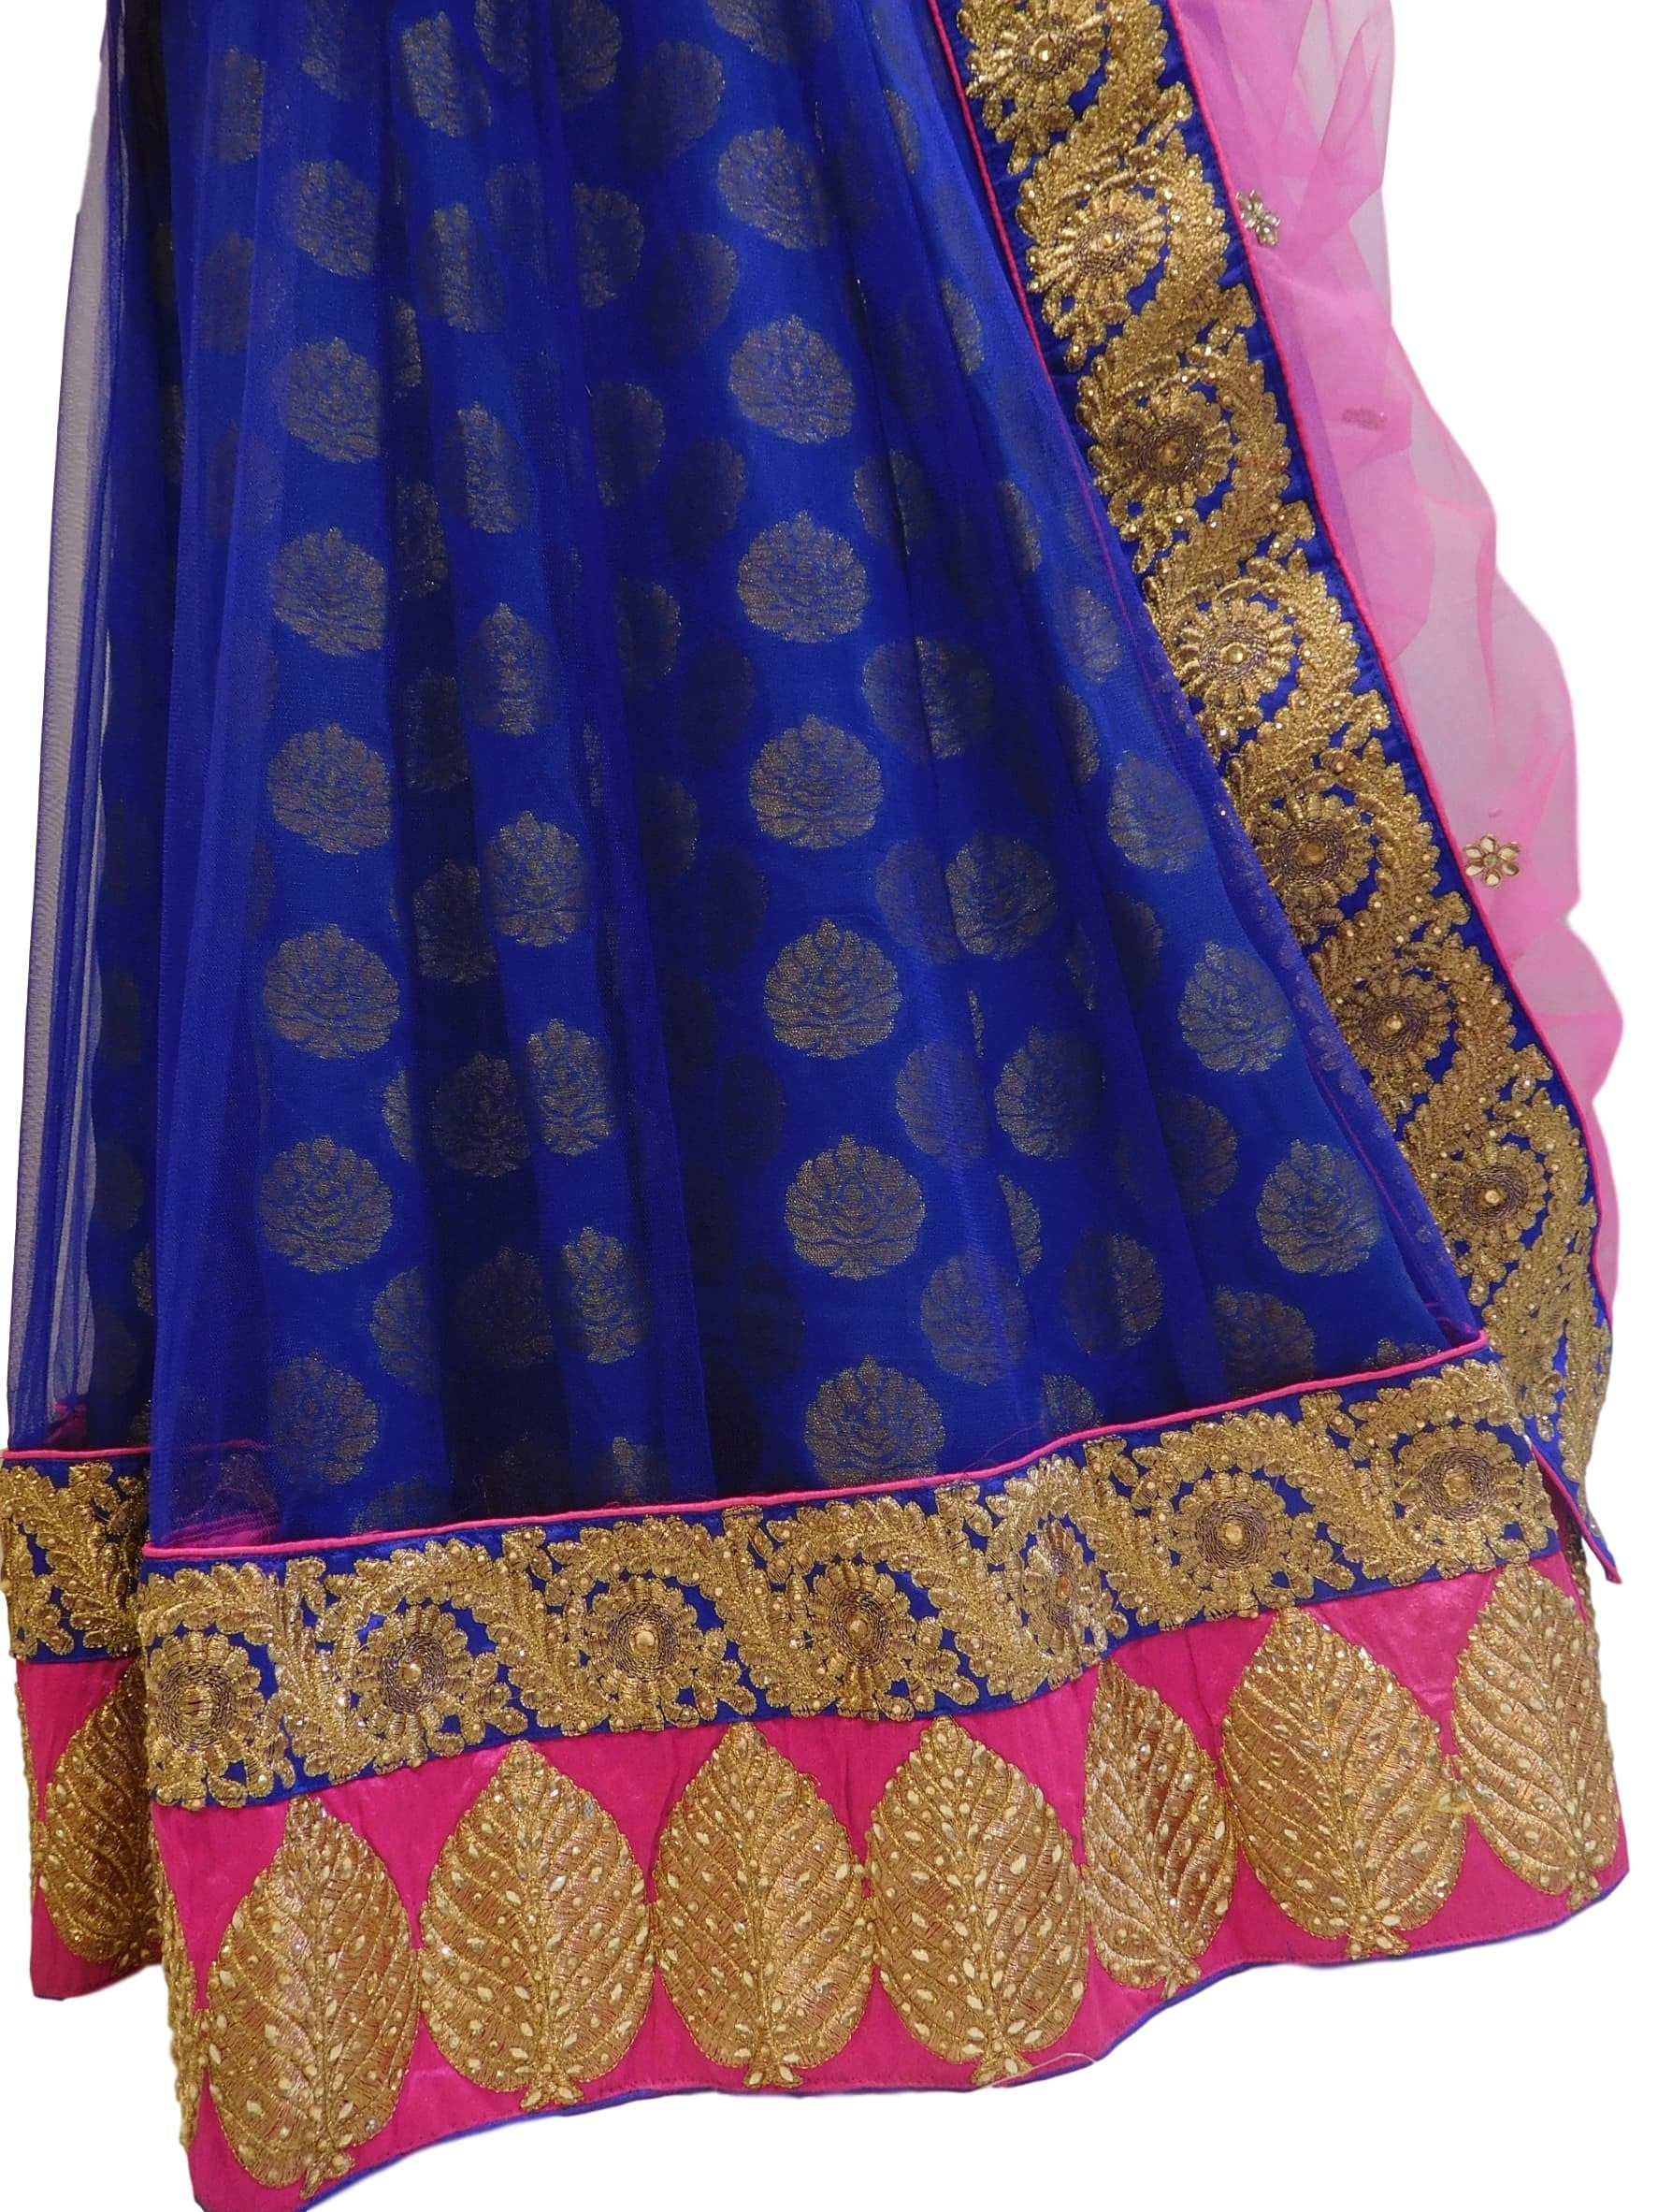 Pink & Blue Designer Bridal Hand Embroidery Work Lahenga With Net Dupatta & Silk Blouse